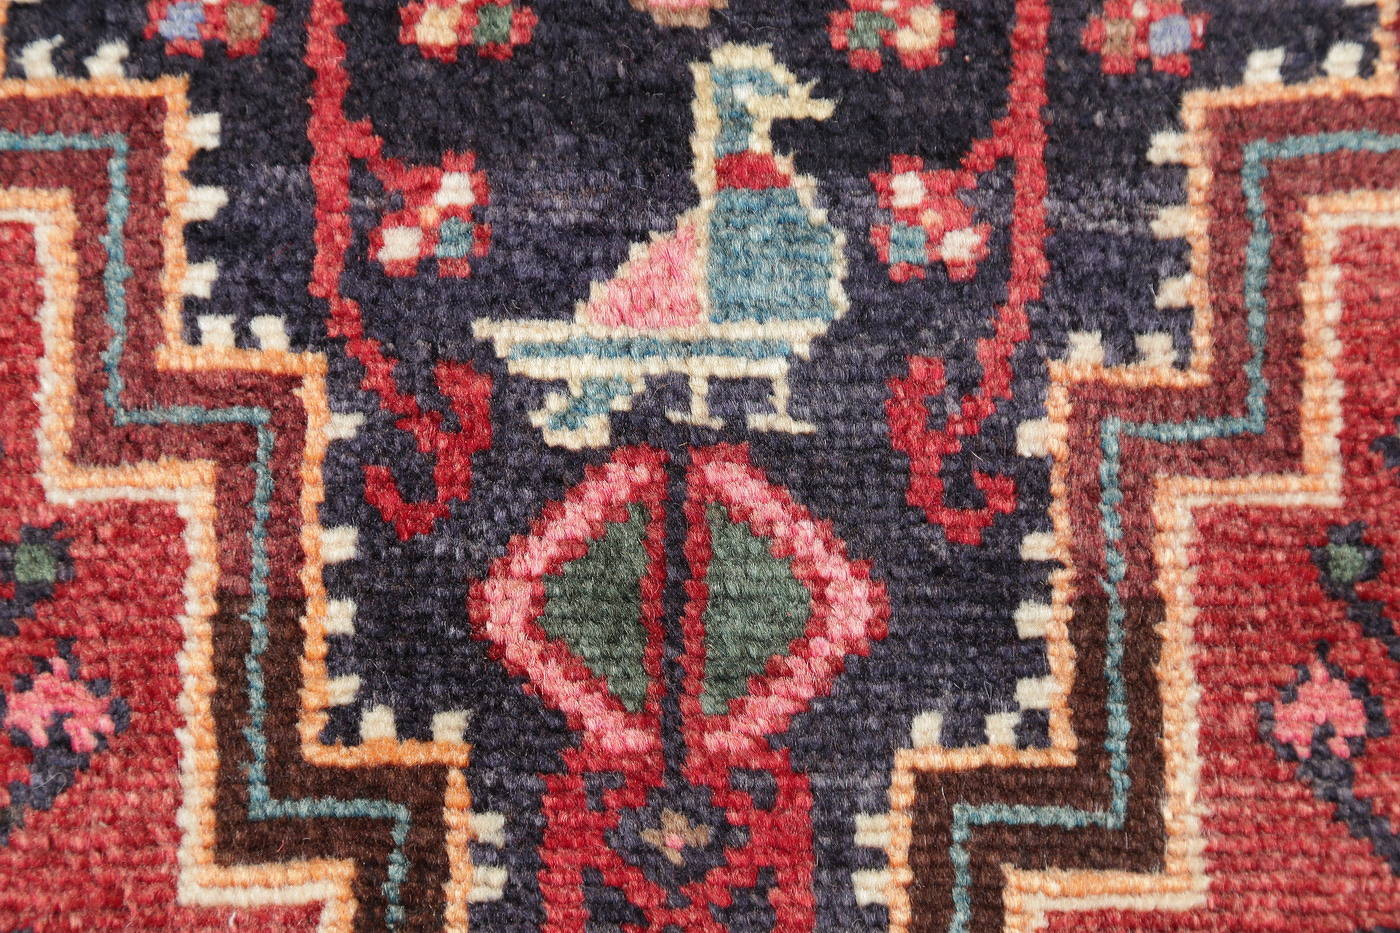 Hand-Knotted Tribal Zanjan Persian Area Rug Wool 4x5